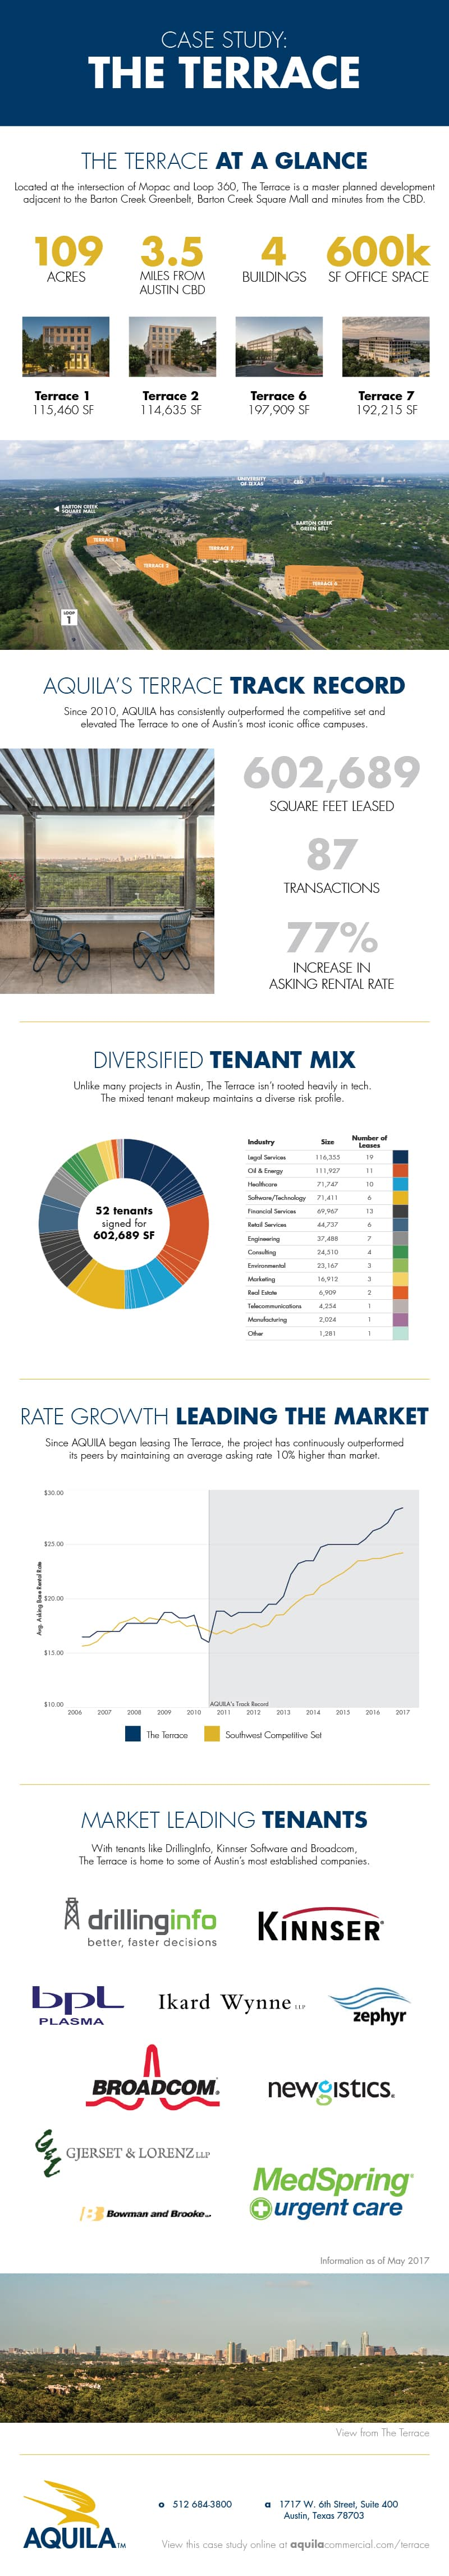 The Terrace Case Study Infographic